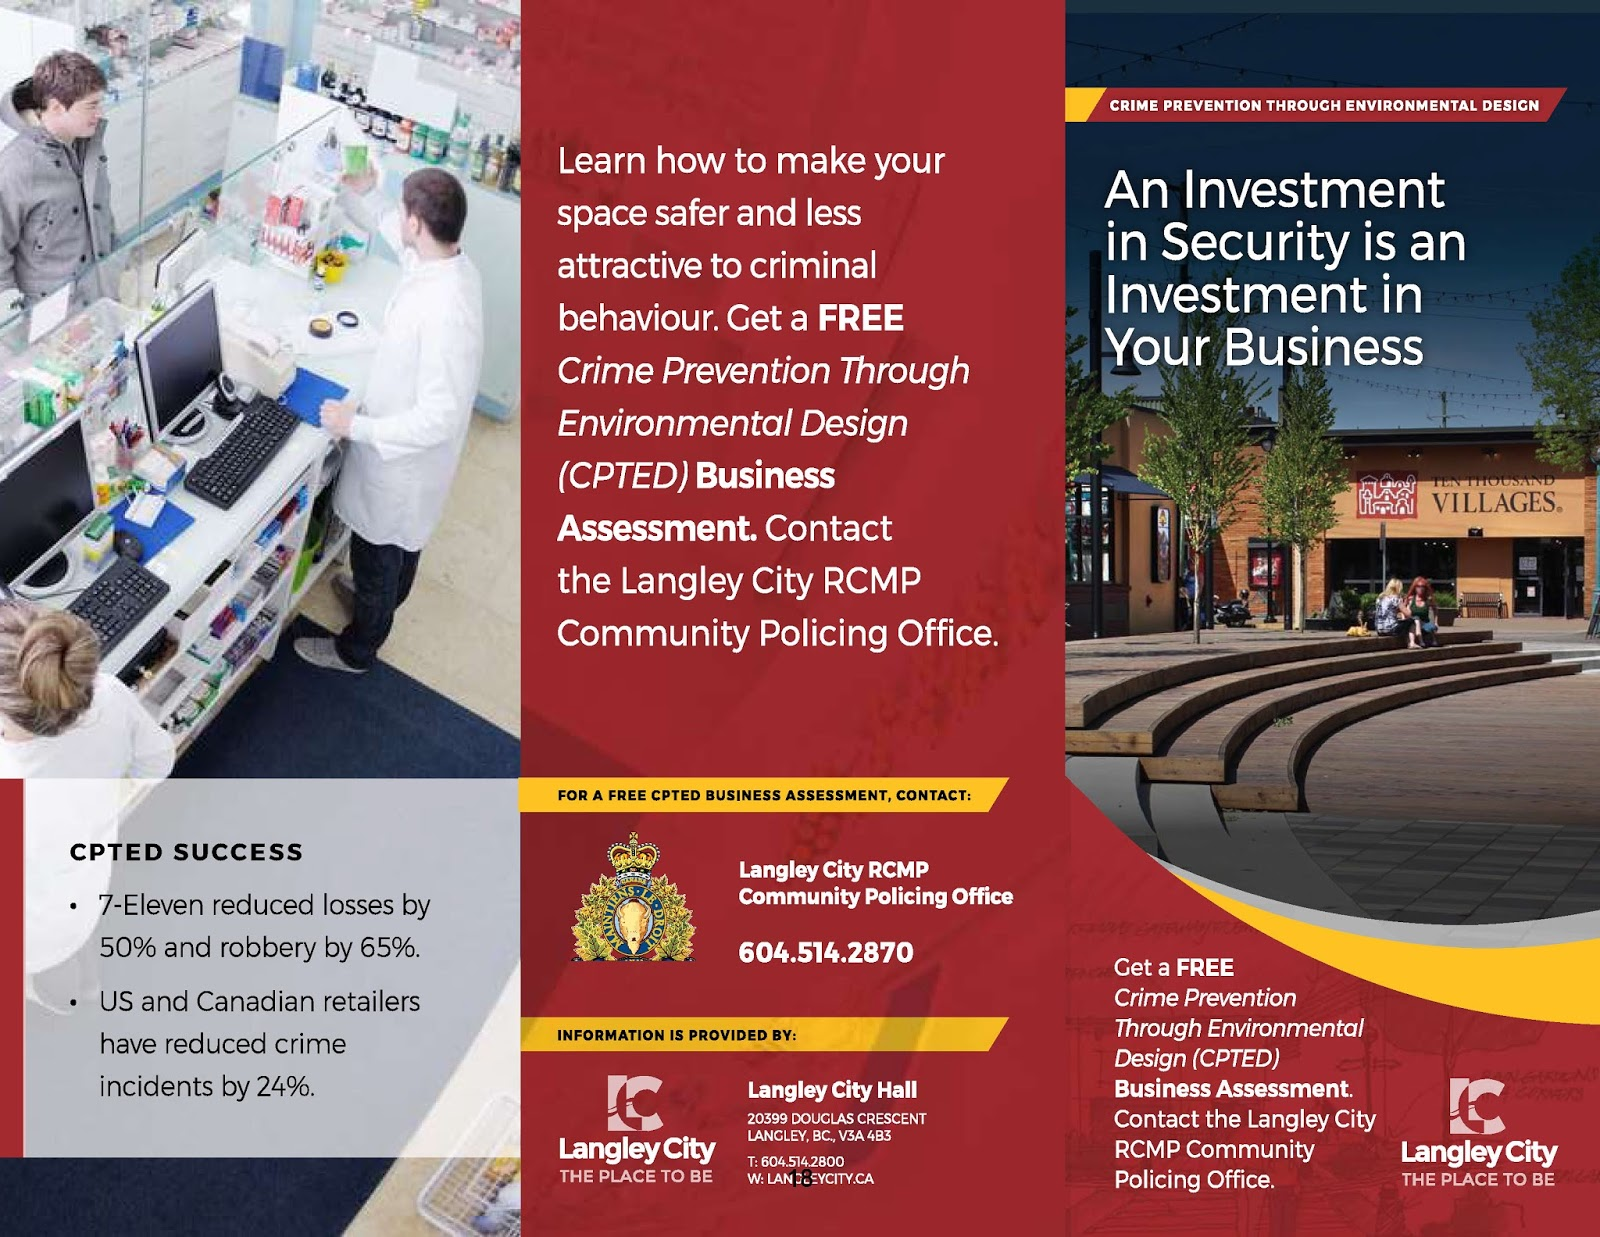 New crime prevention brochure for businesses - outside. Select image to  enlarge.